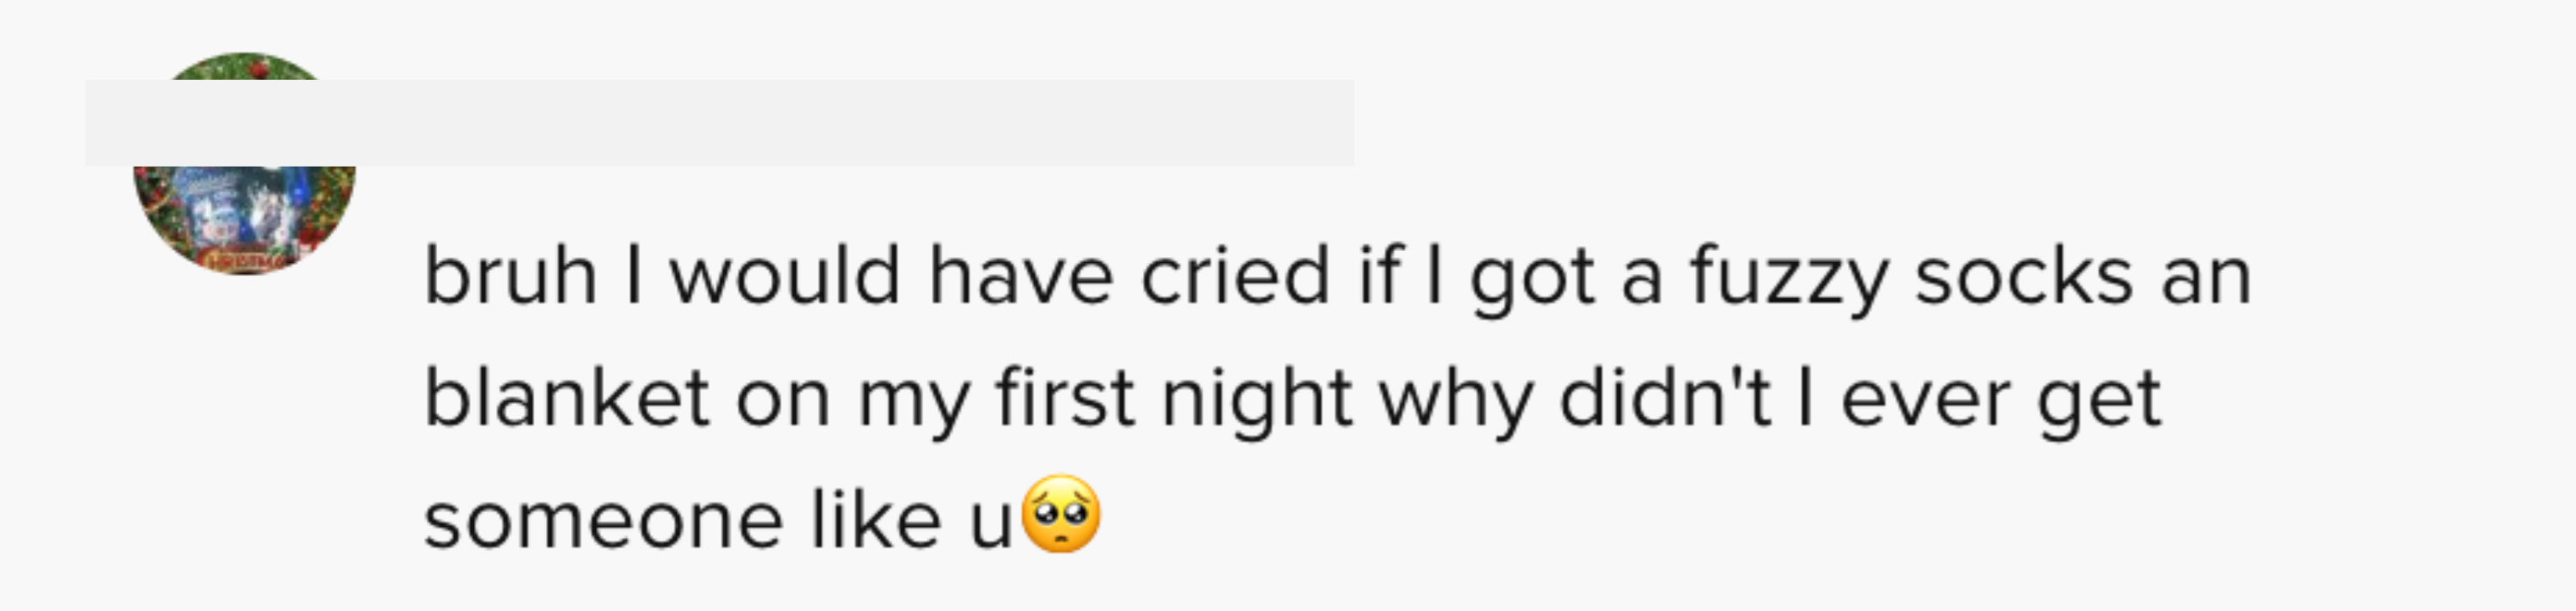 bruh I would have cried if I got fuzzy socks and blanket on my first night why didn't I get someone like u